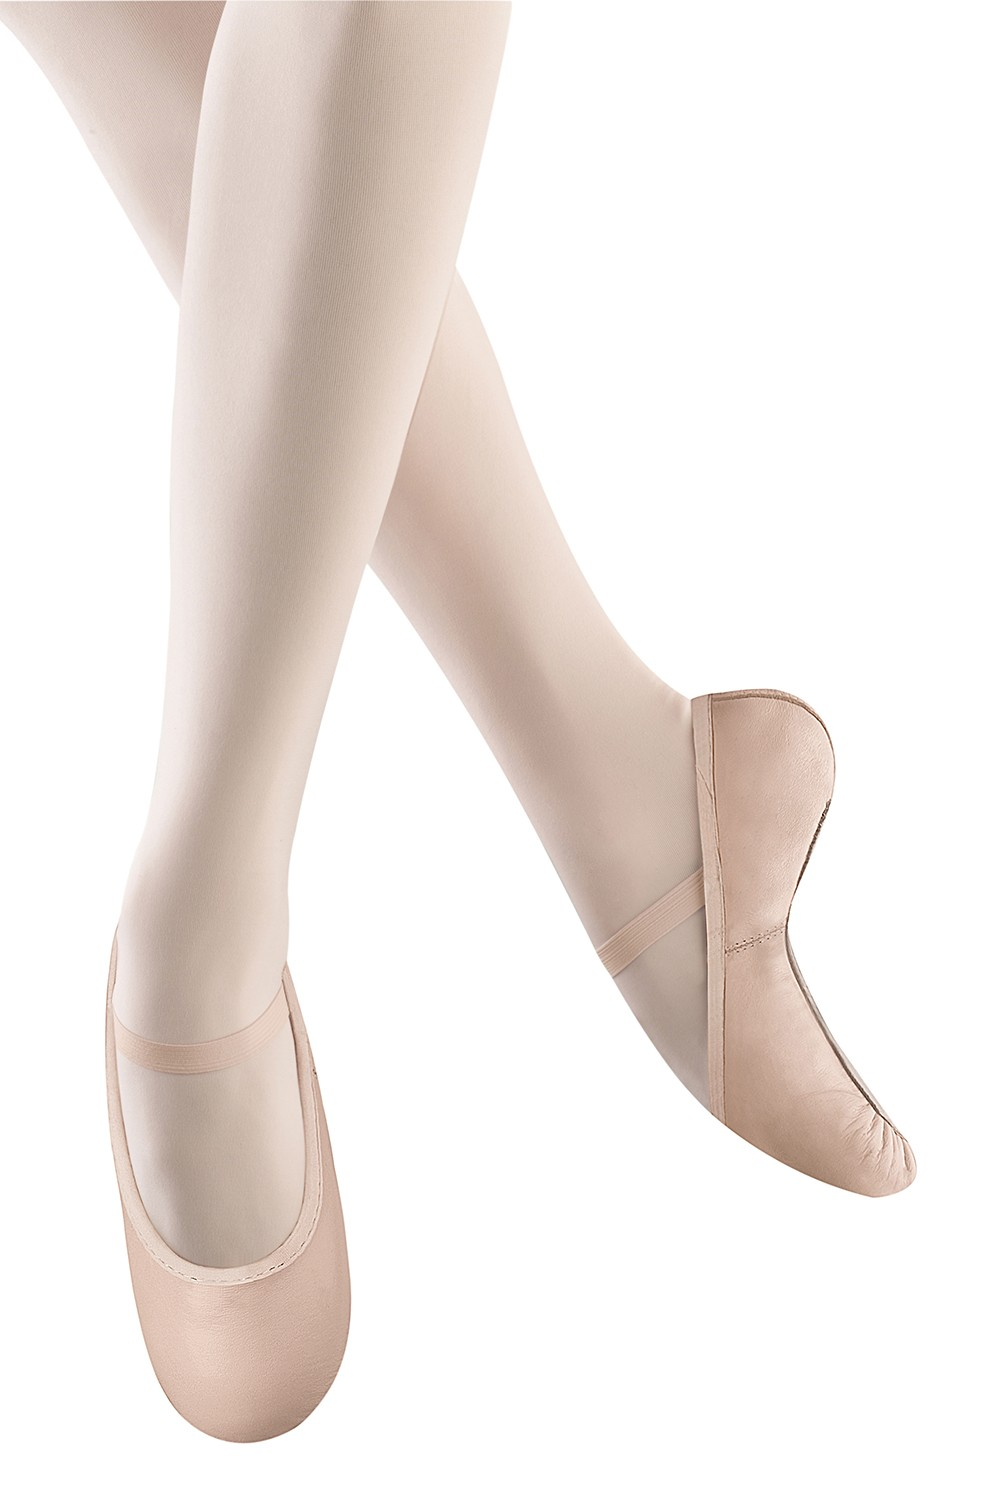 Belle - Girls Girl's Ballet Shoes